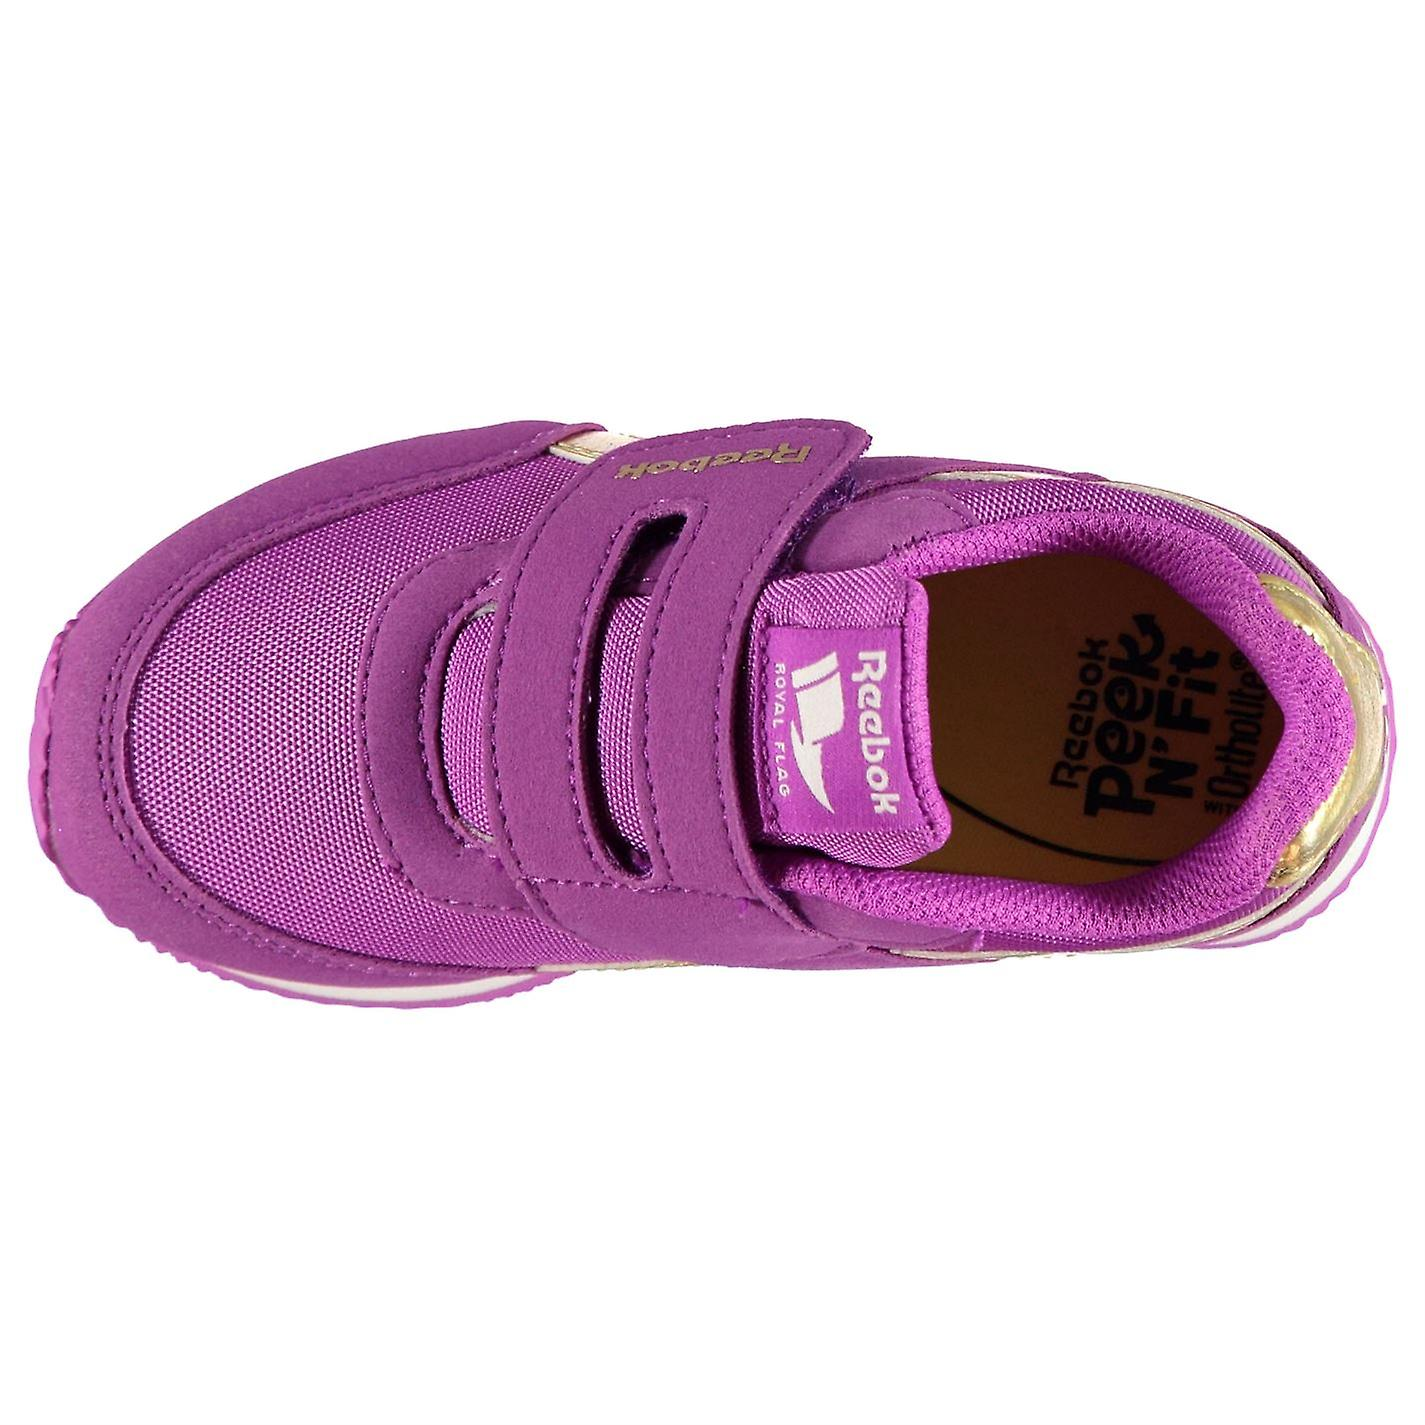 15d72c4f Reebok Girls Classic Jogger RS Baby Trainers Shoes Ortholite Tonal Stitching